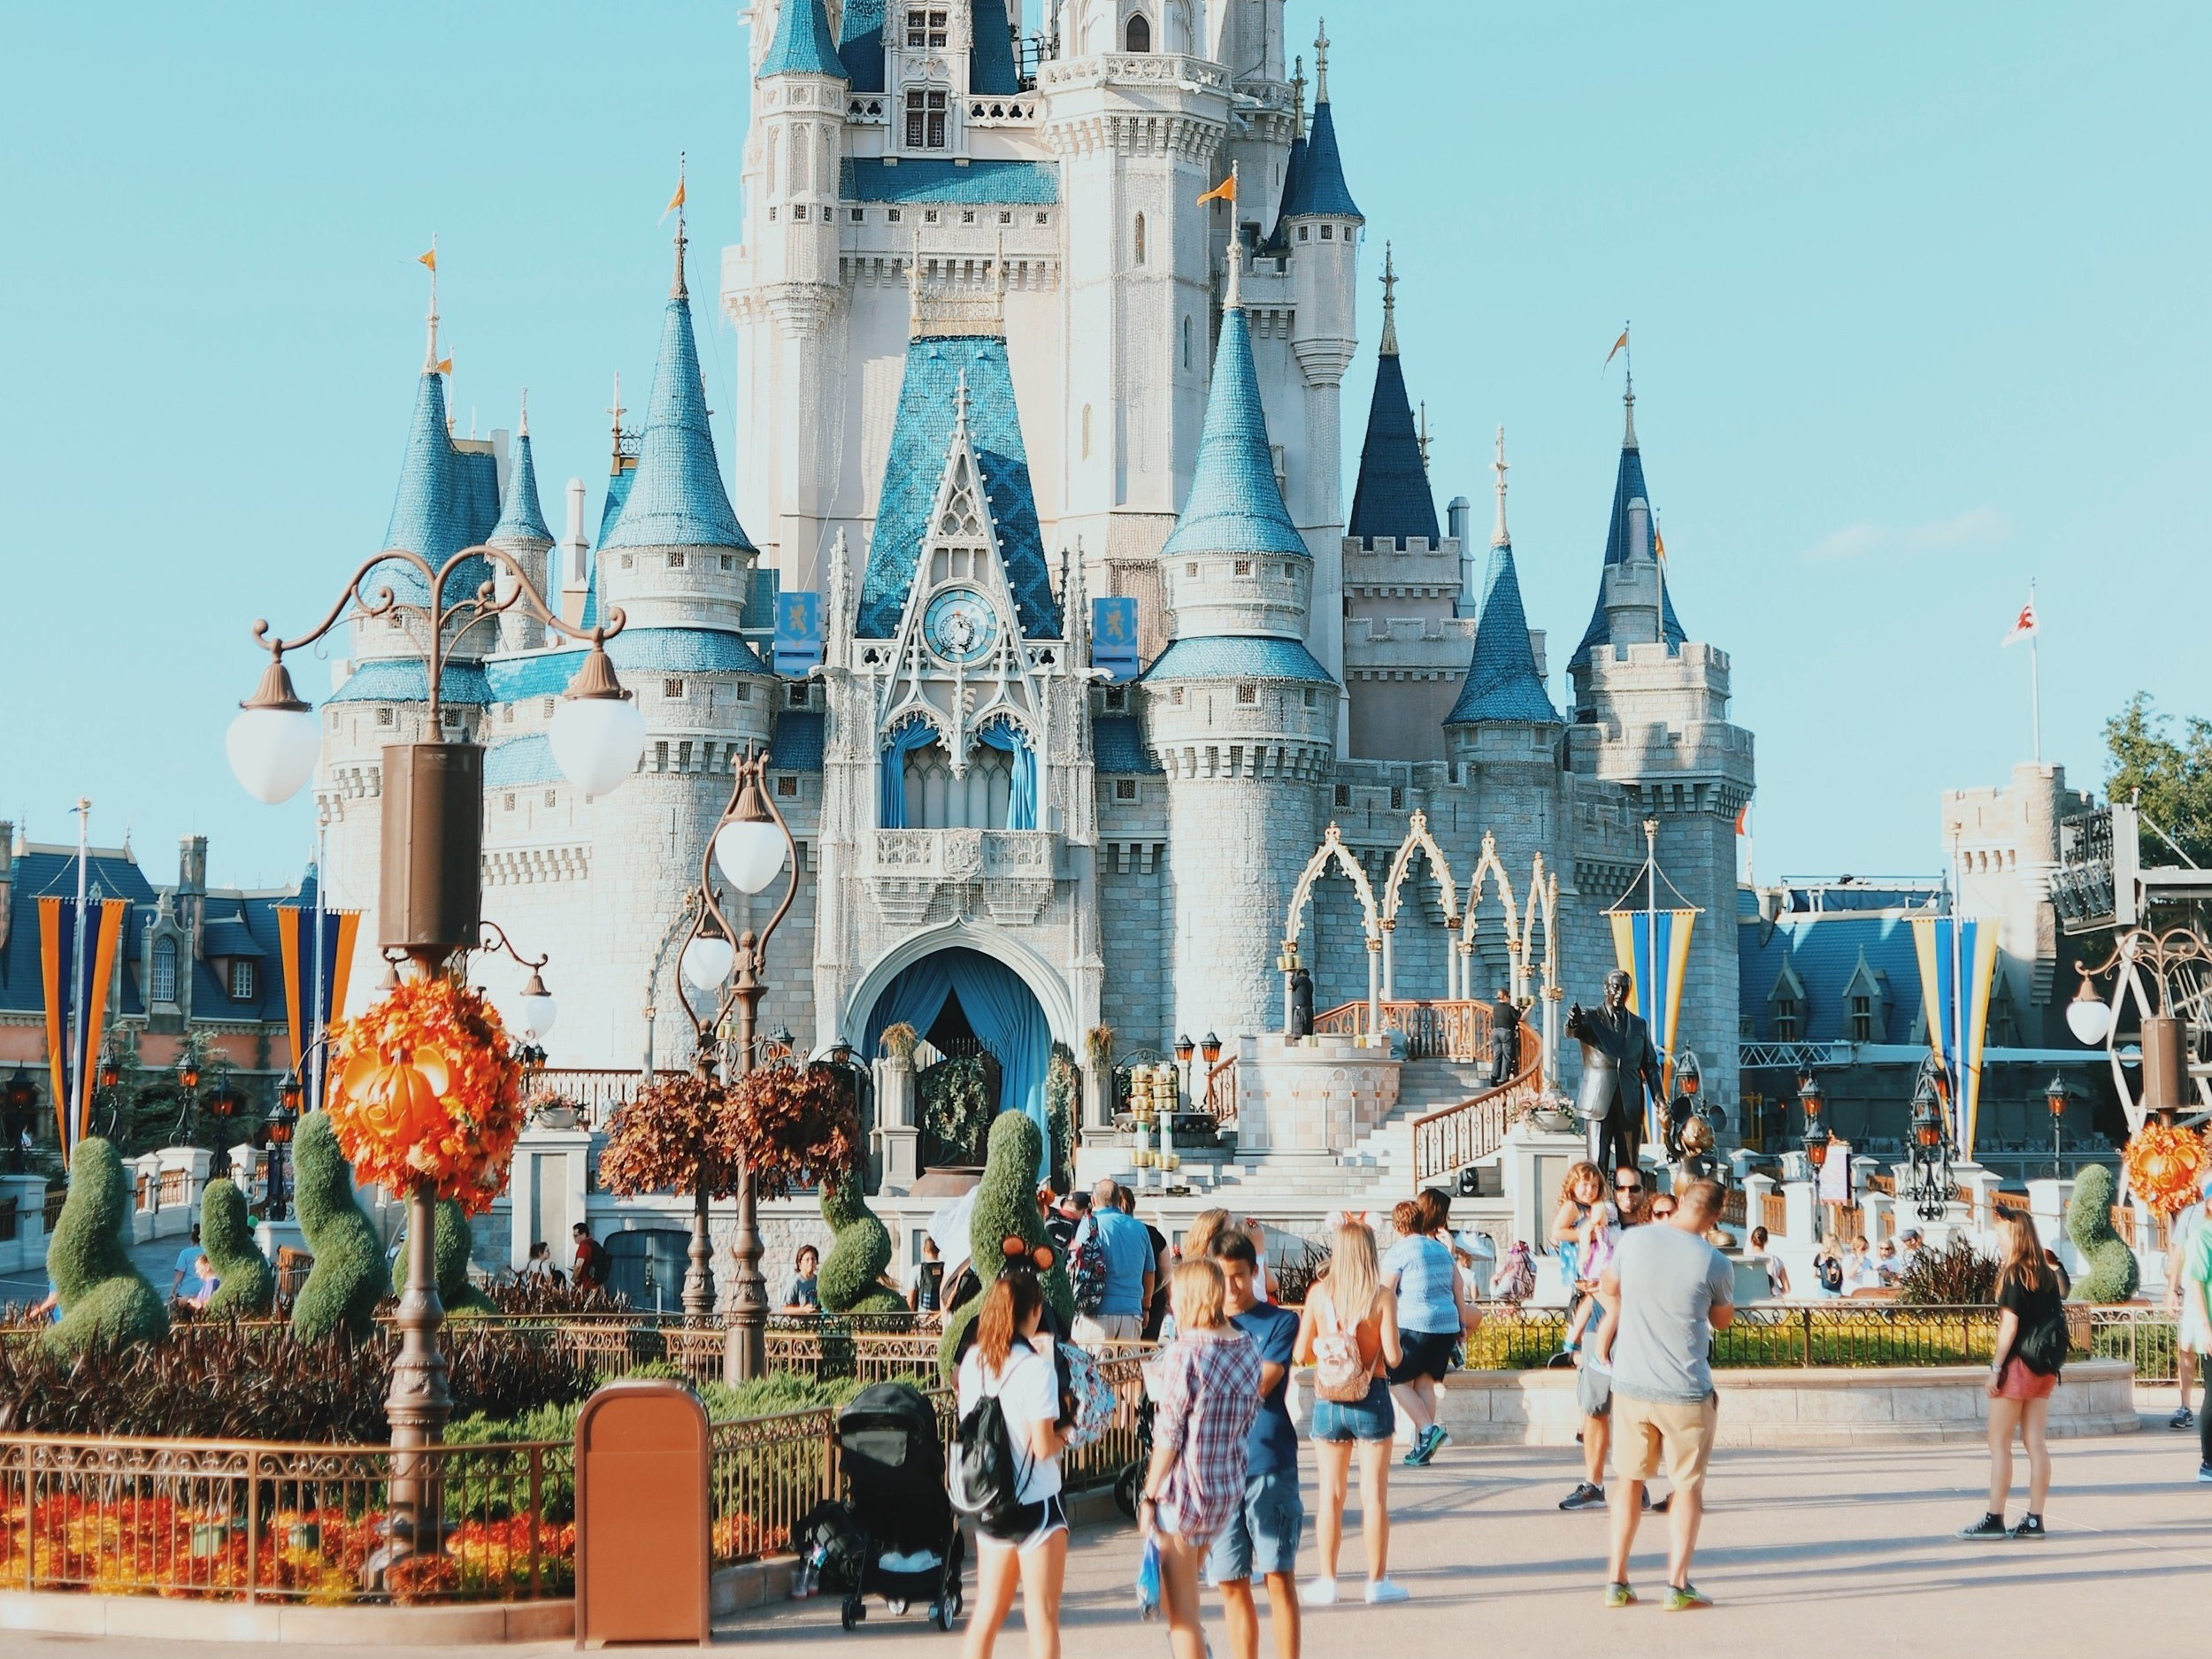 Family Vacations & Theme Parks - Your best family vacation ever is just a call away. From relaxing vacations on the beach to active vacations enjoying the best of the Magic Kingdom, we're ready to help you plan it all!